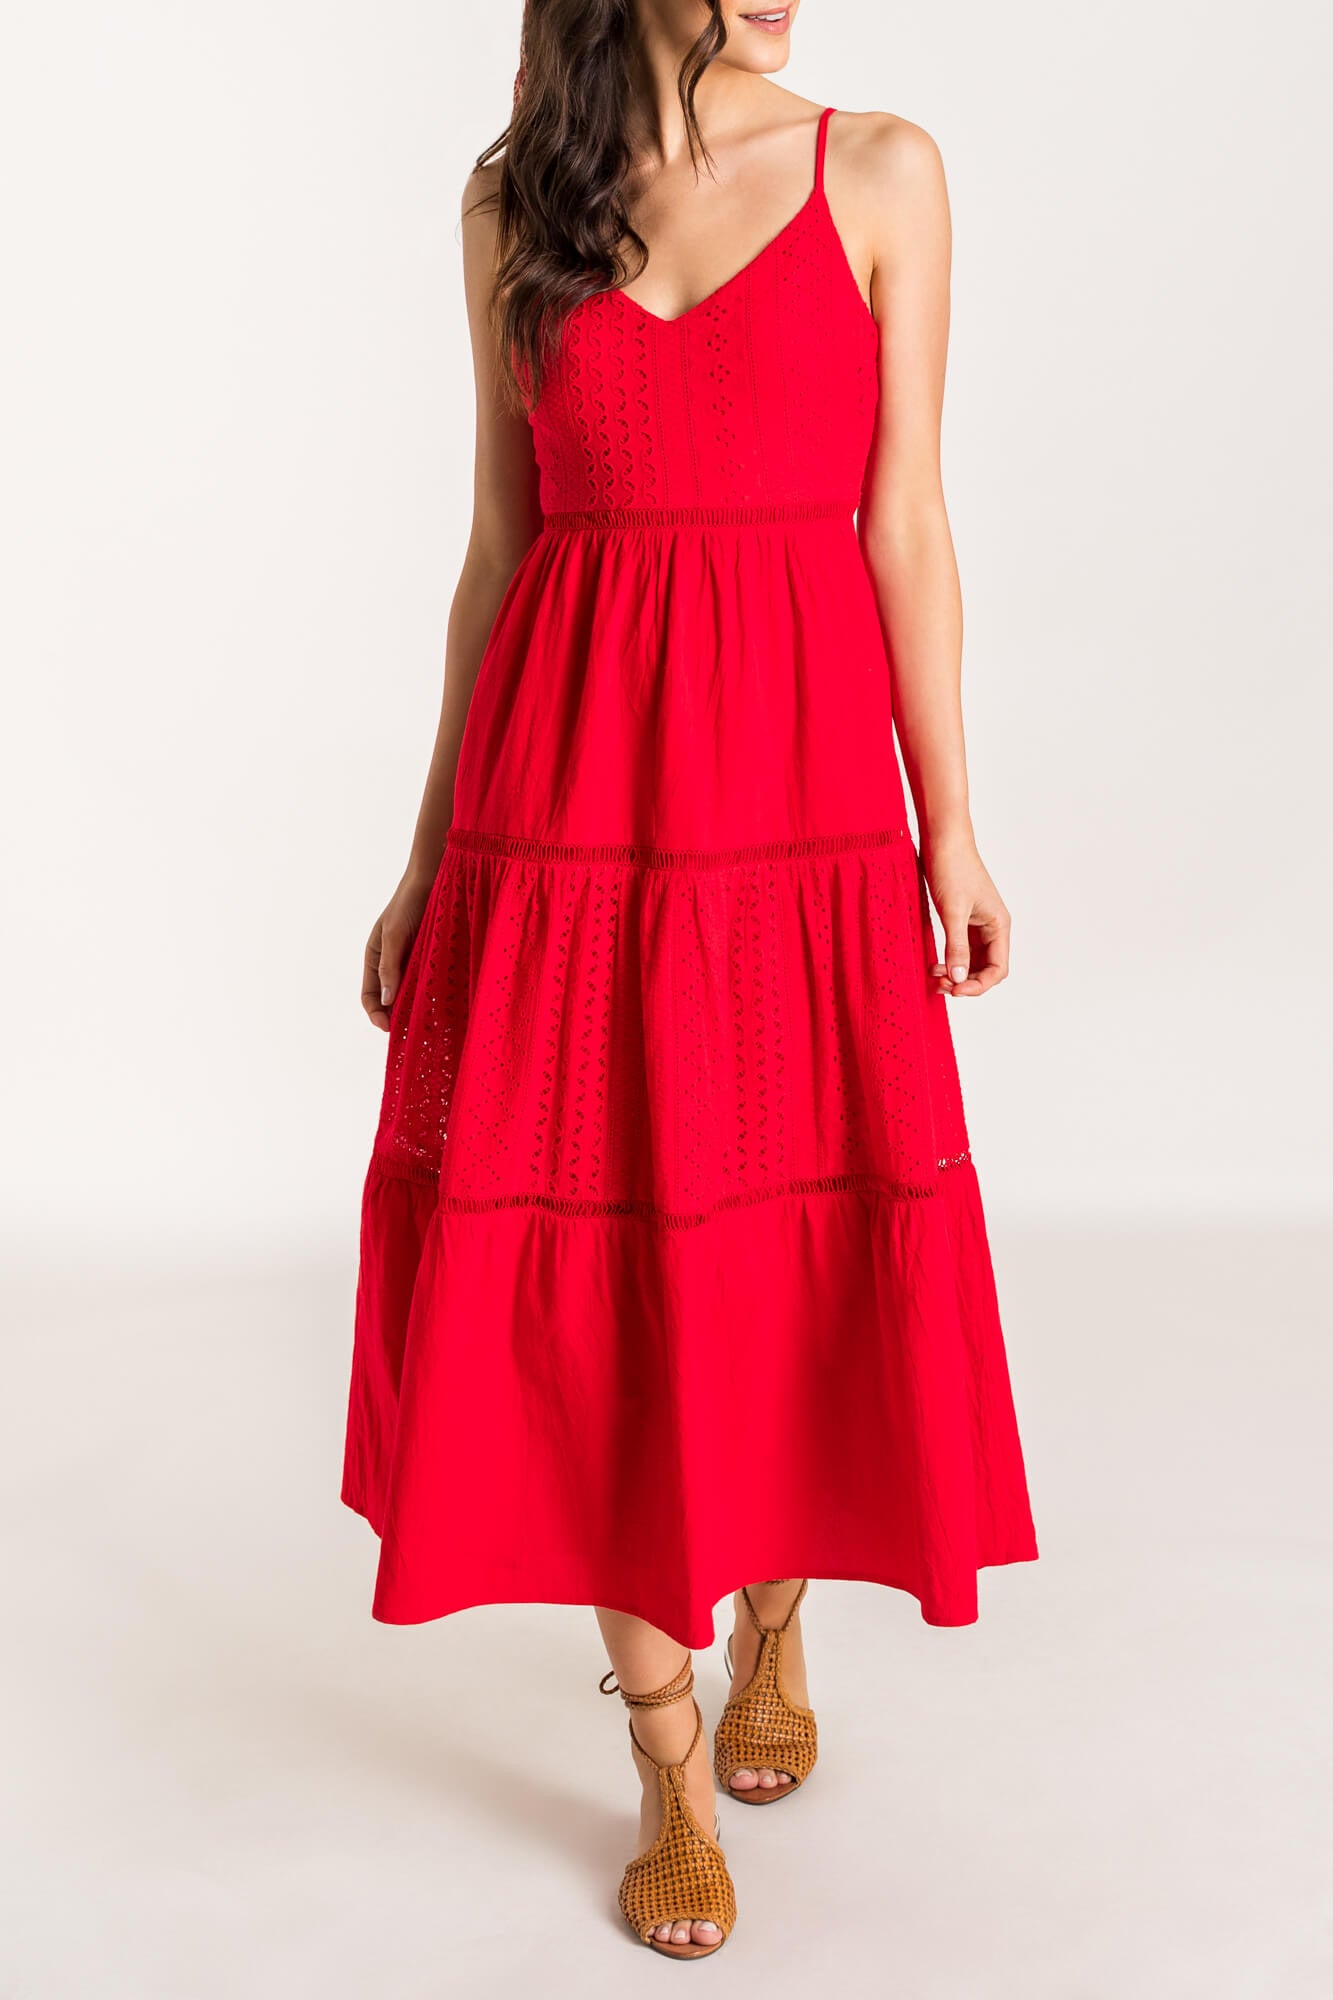 Kenzie Midi Dress